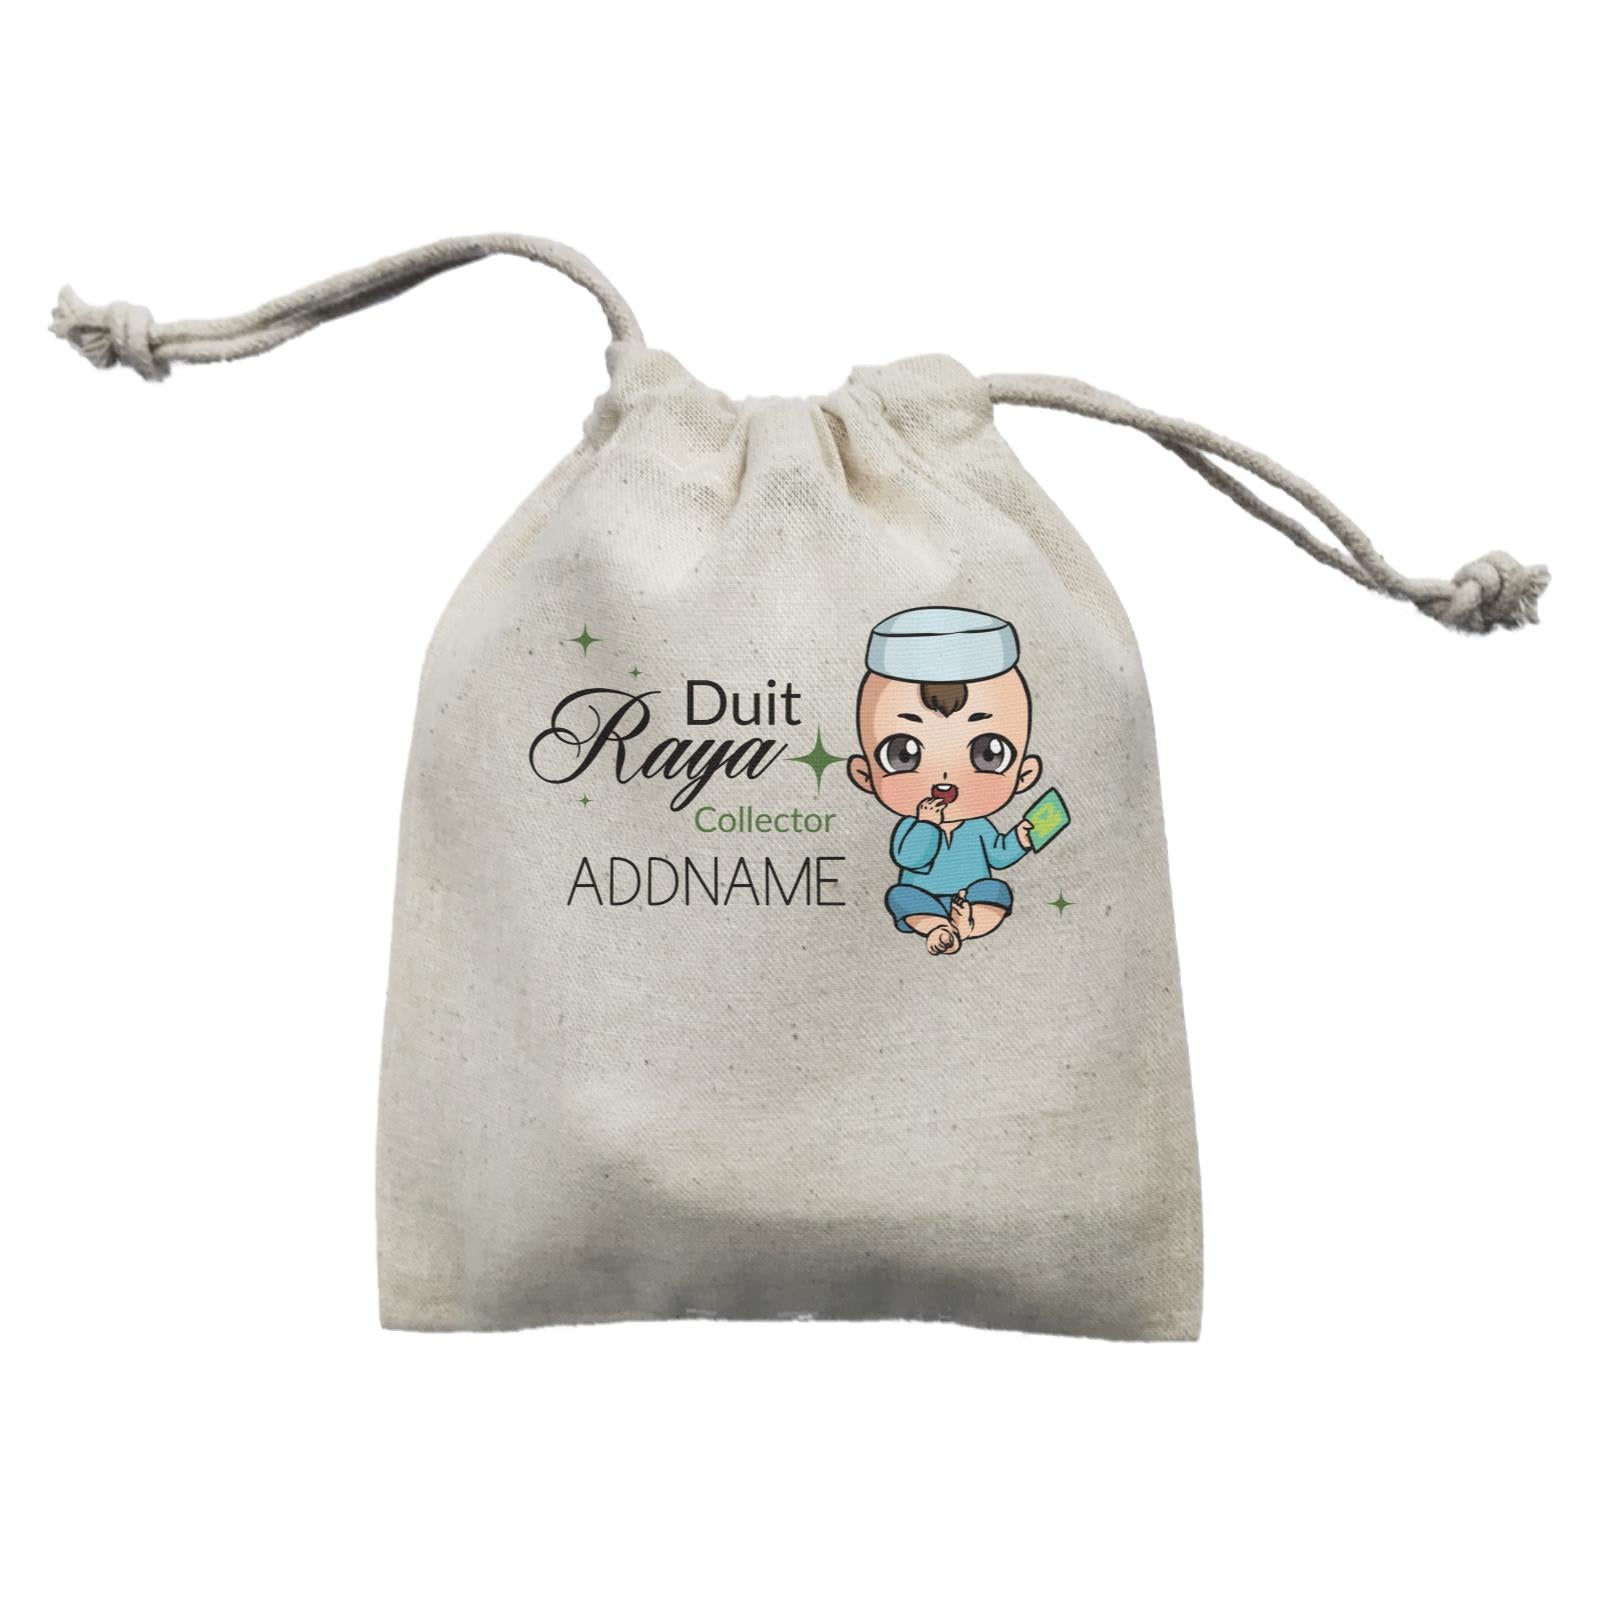 Raya Chibi Baby Baby Boy Duit Raya Collector Addname Mini Accessories Mini Pouch